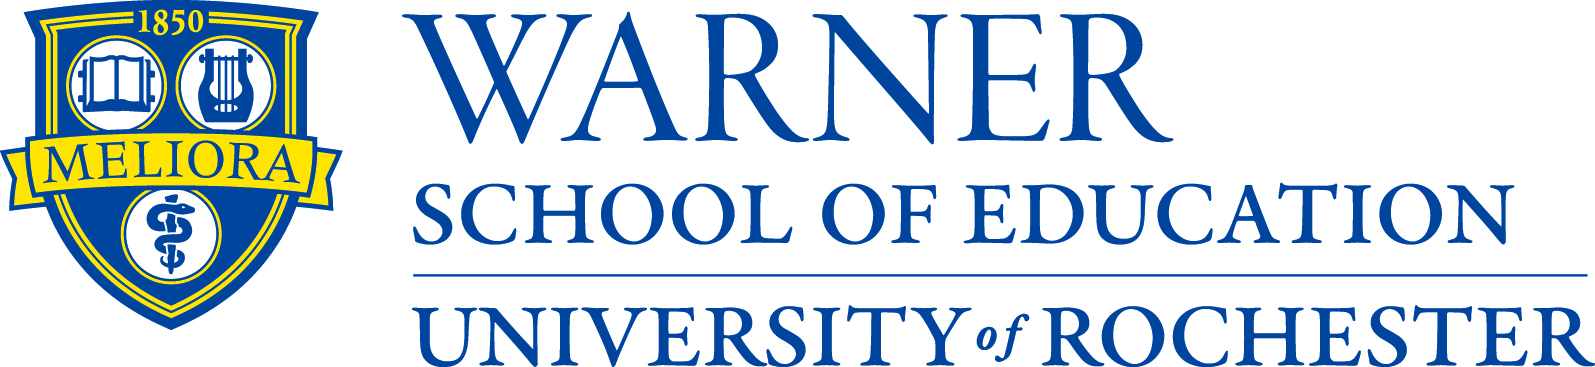 Warner School of Education logo